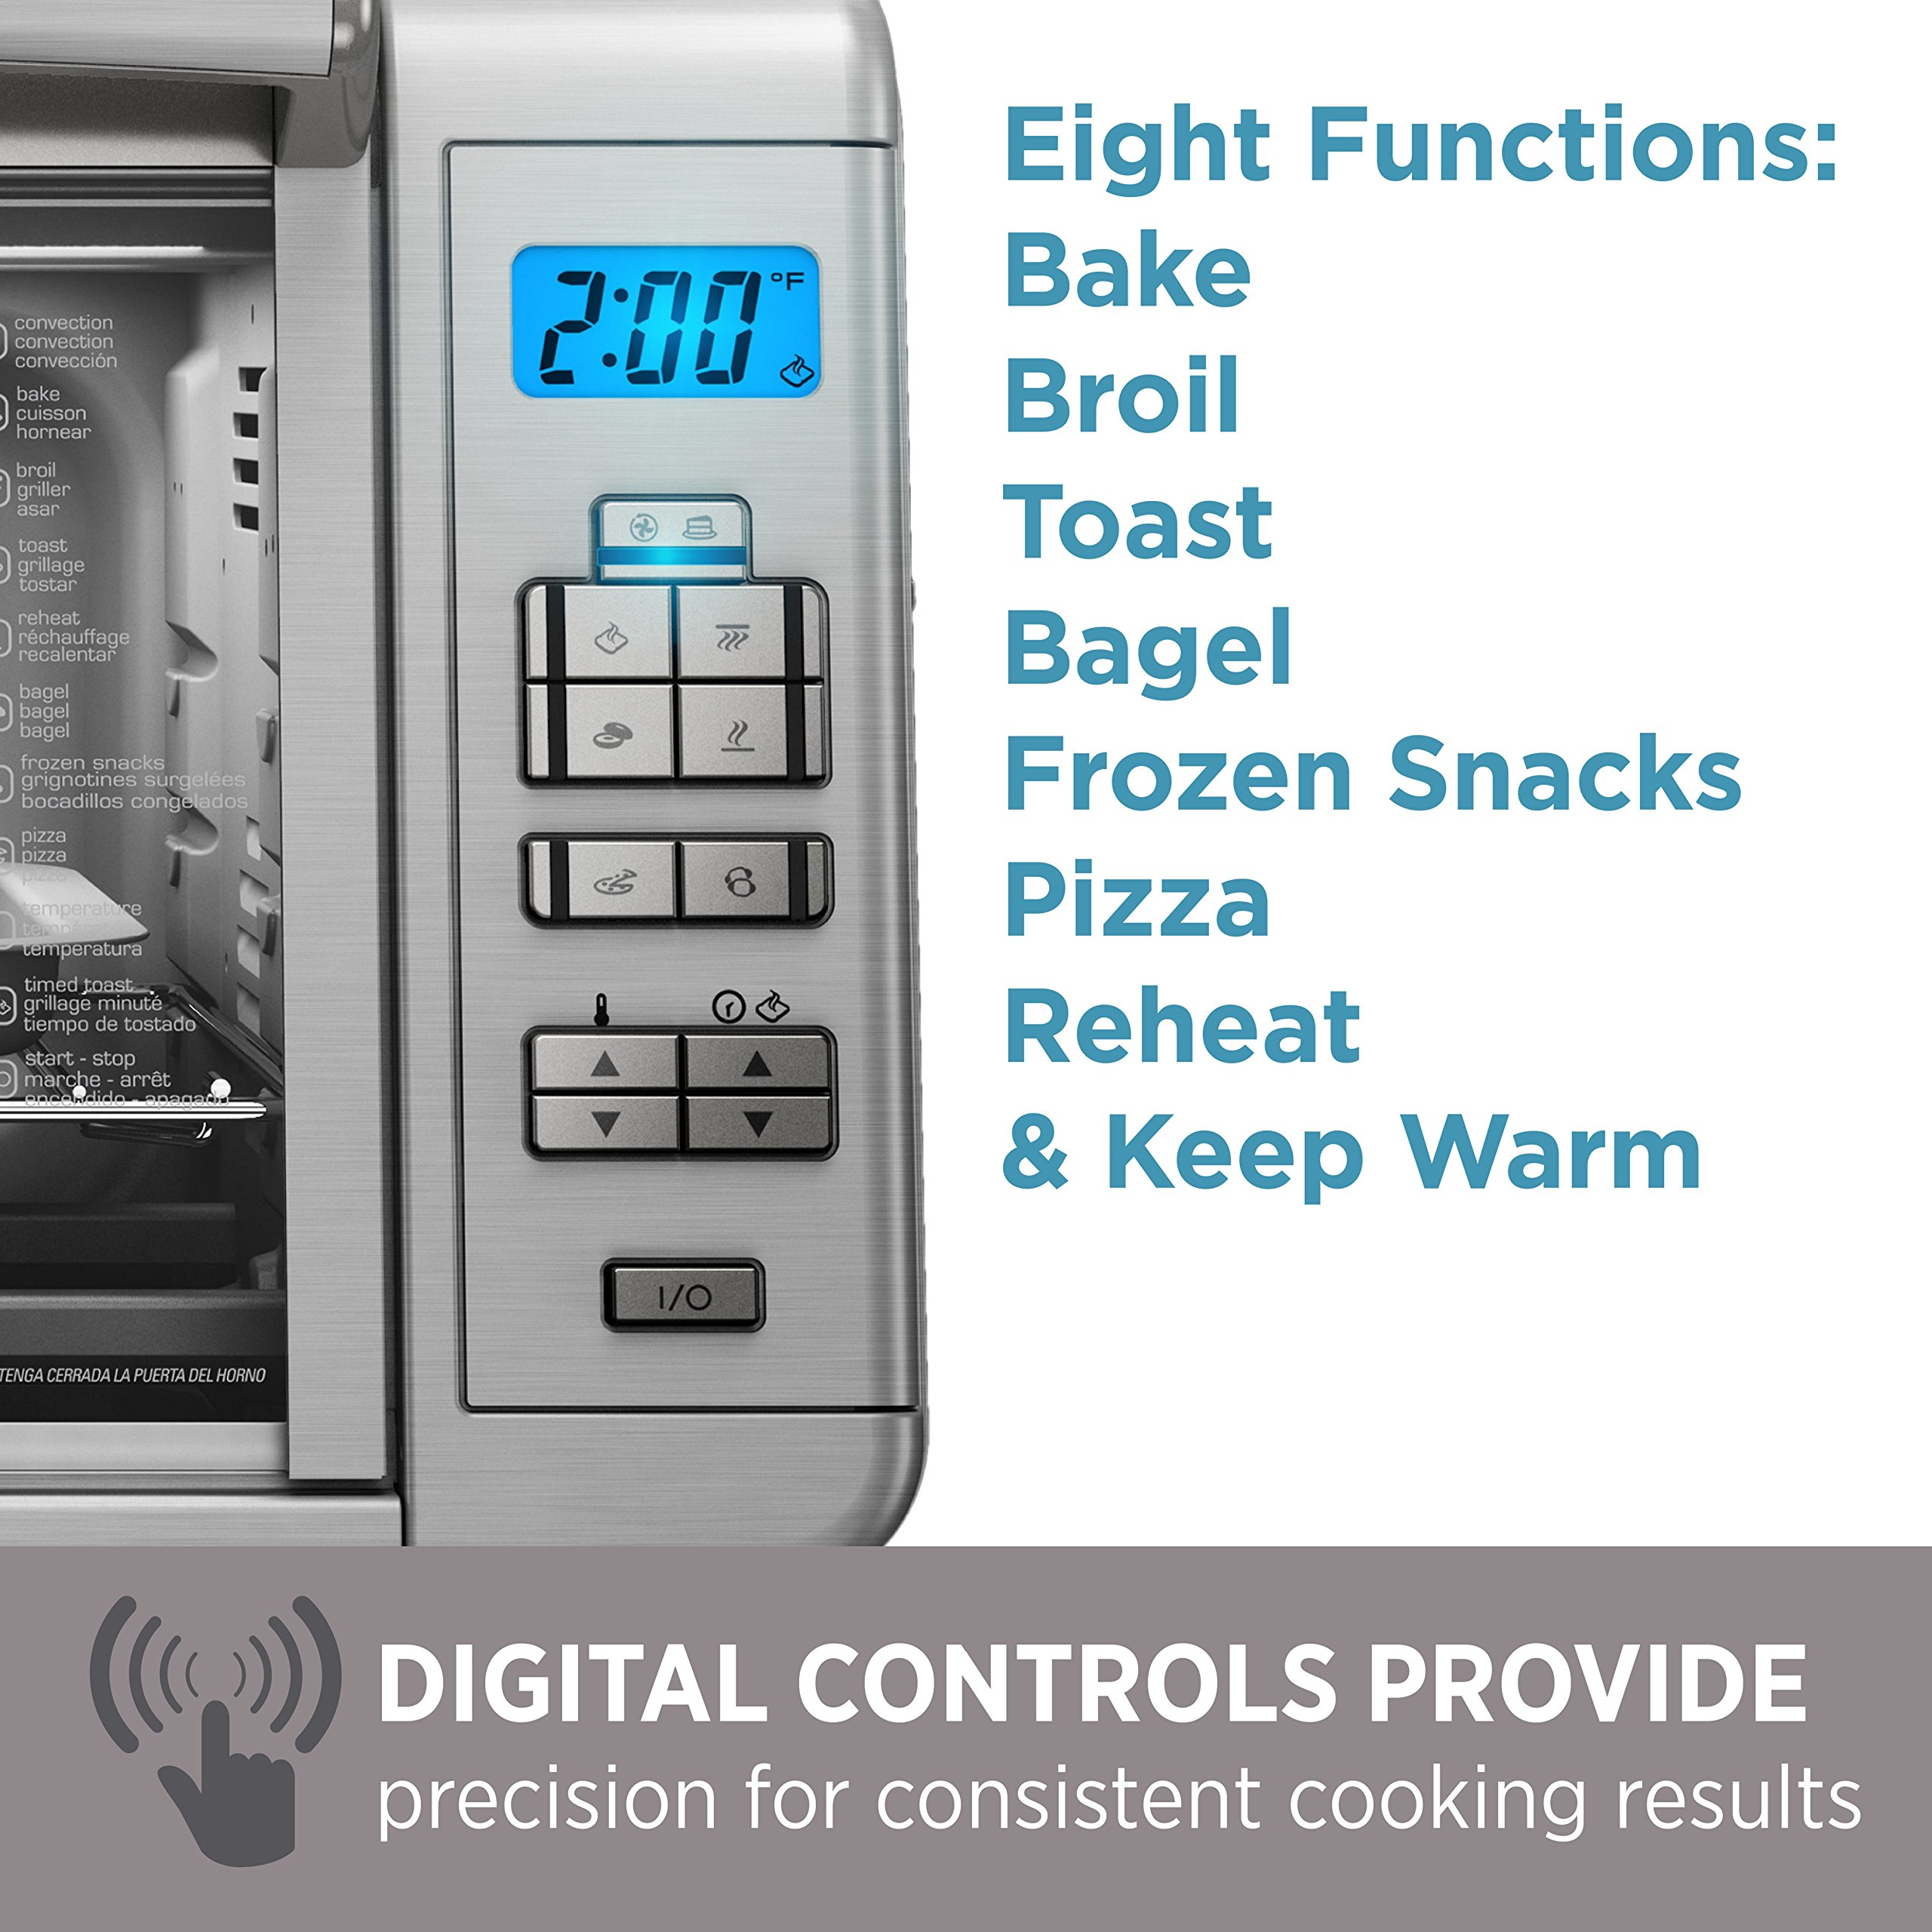 BLACK+DECKER 6-Slice Digital Convection Countertop Toaster Oven, Stainless Steel, TO3280SSD by BLACK+DECKER (Image #7)